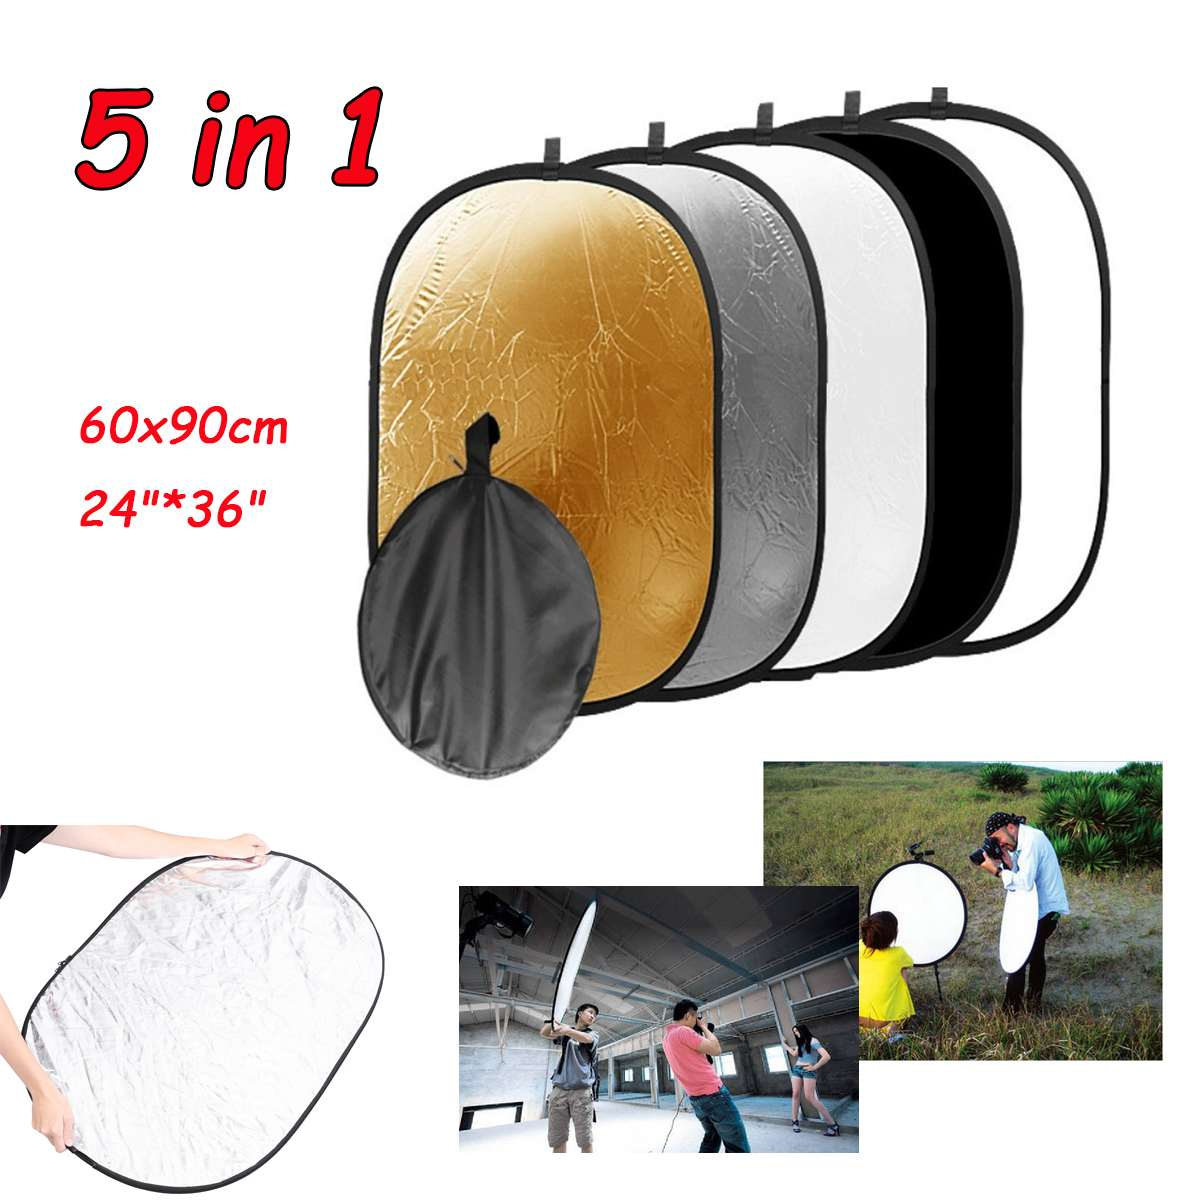 5 In1 Reflector Photography Studio Photo Oval Collapsible Light Reflector Portable Photo Disc Diffuser 24*36inch 60x90cm